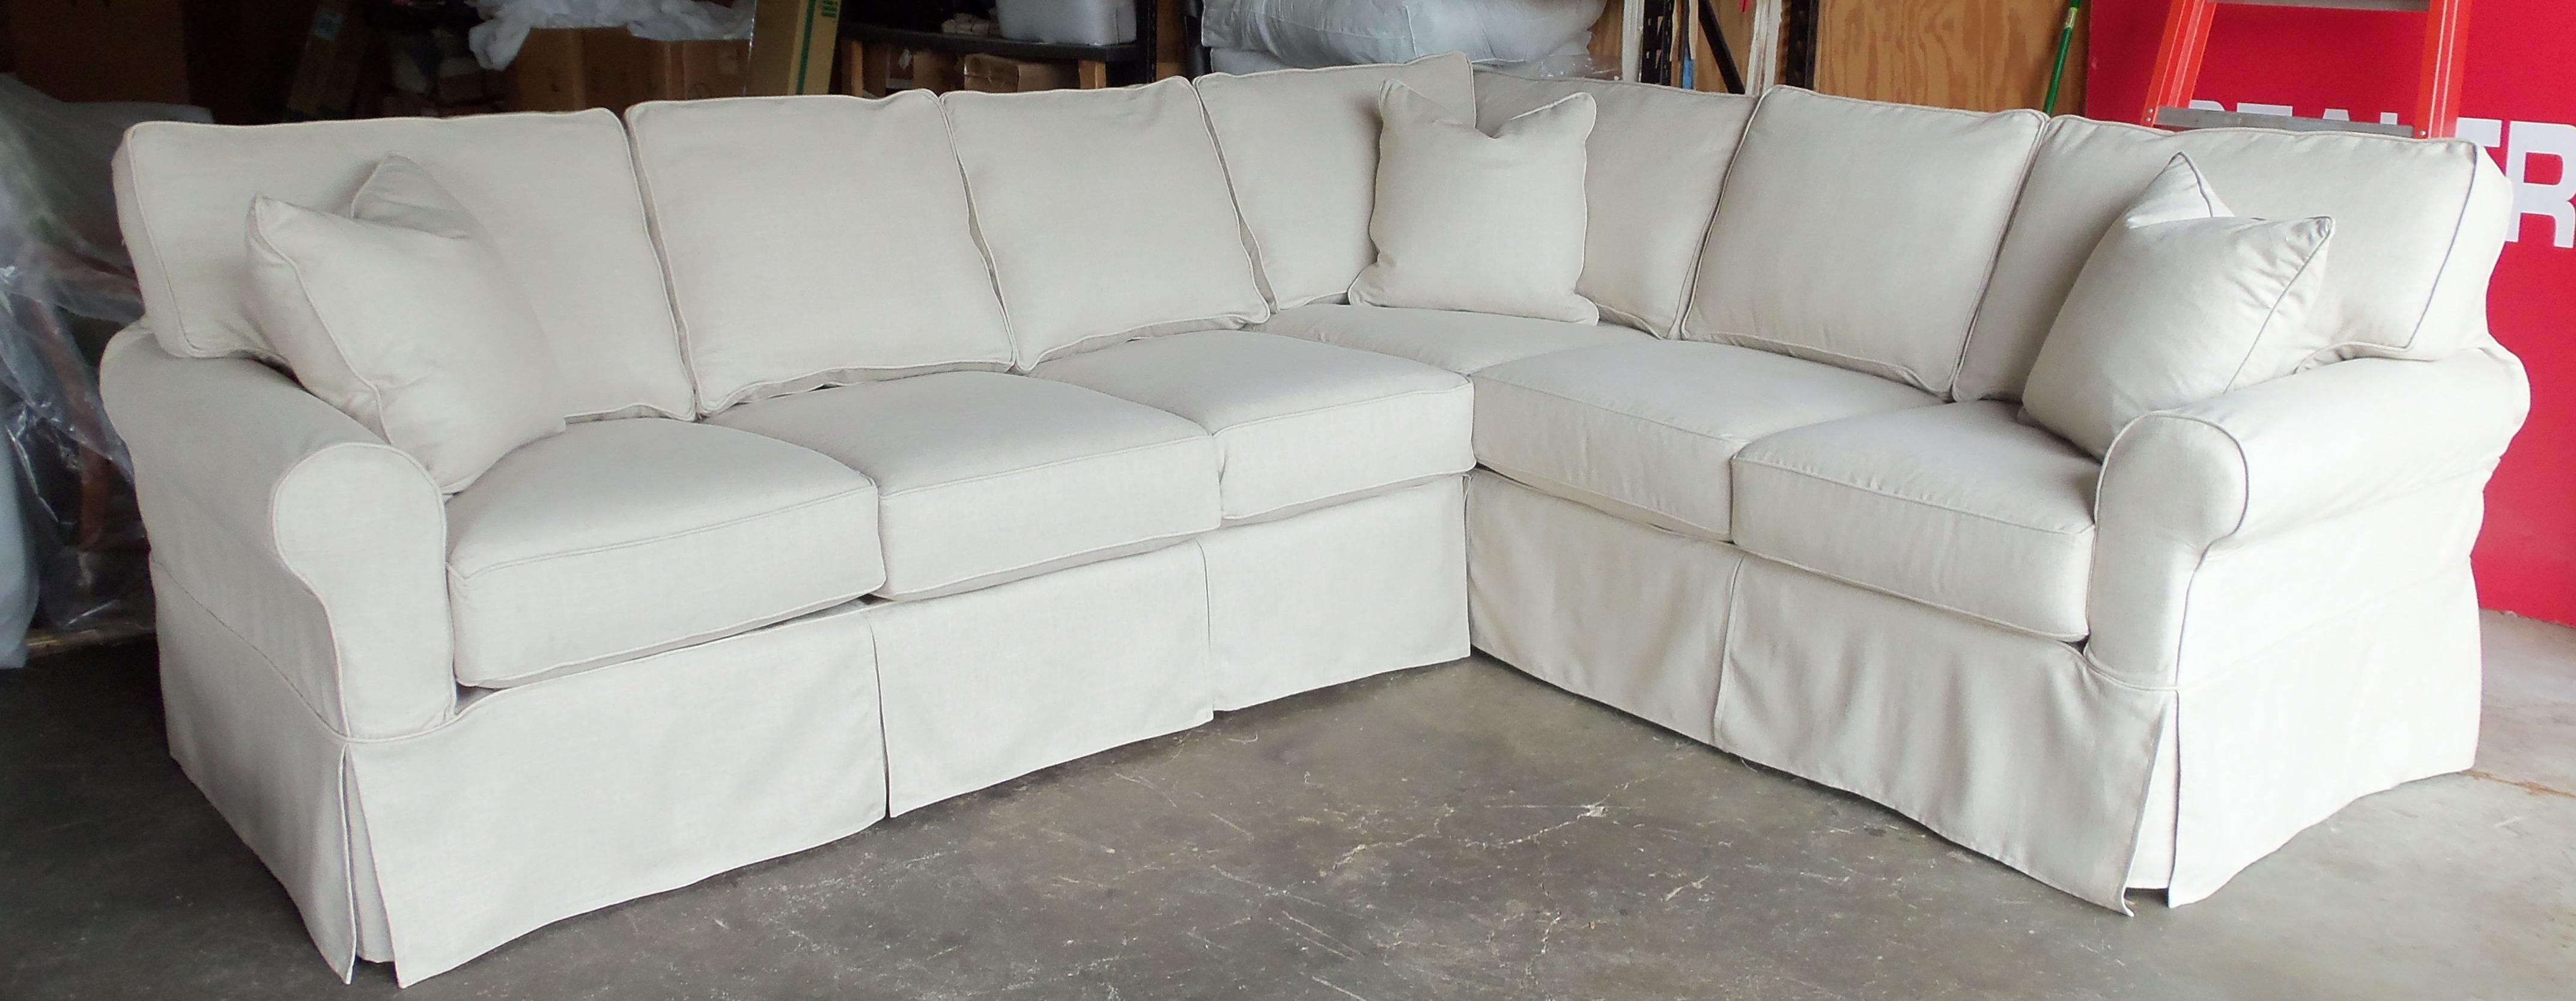 Decorating: Exciting White Rowe Furniture Slipcovers With Pertaining To Rowe Slipcovers (Image 2 of 20)